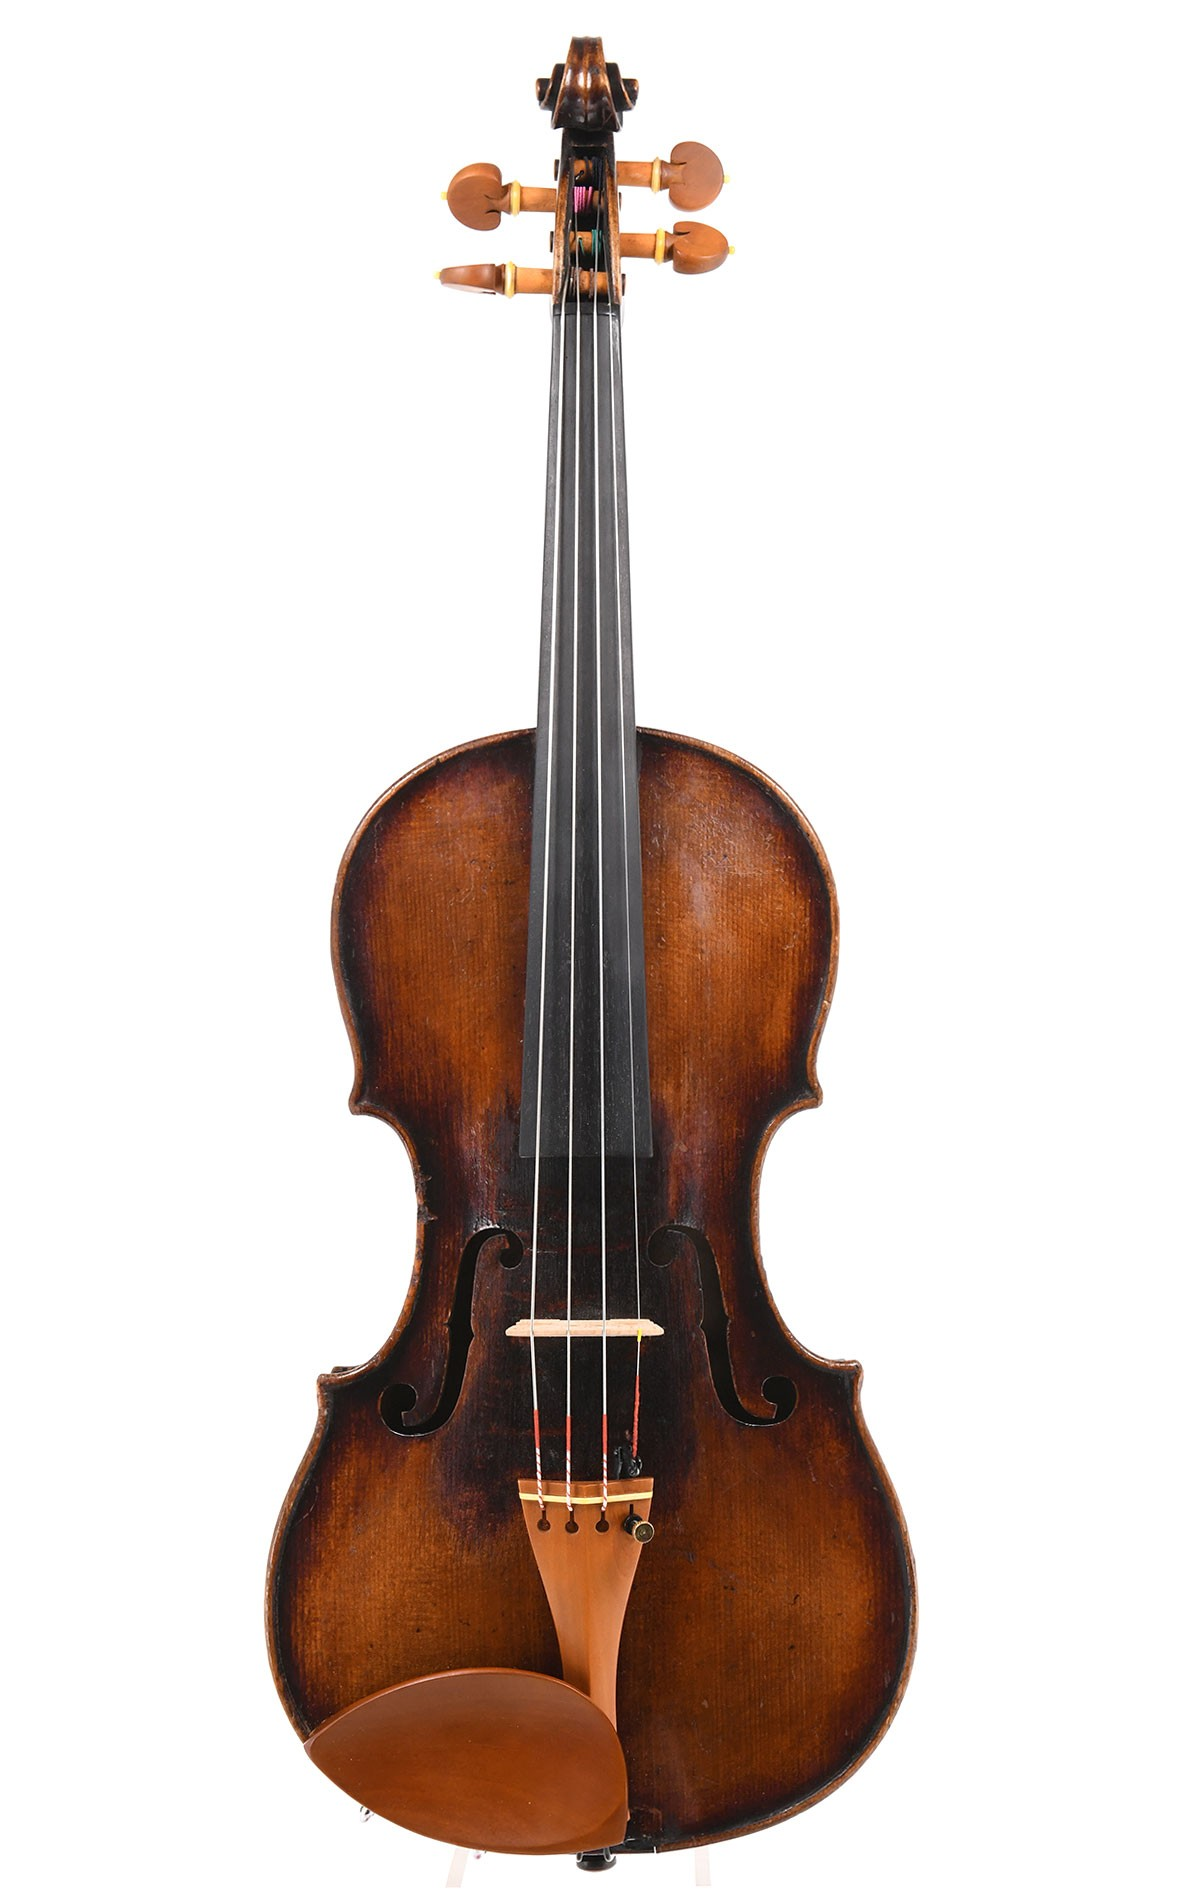 Antique Bohemian violin after Jacobus Stainer - violinist recommendation!